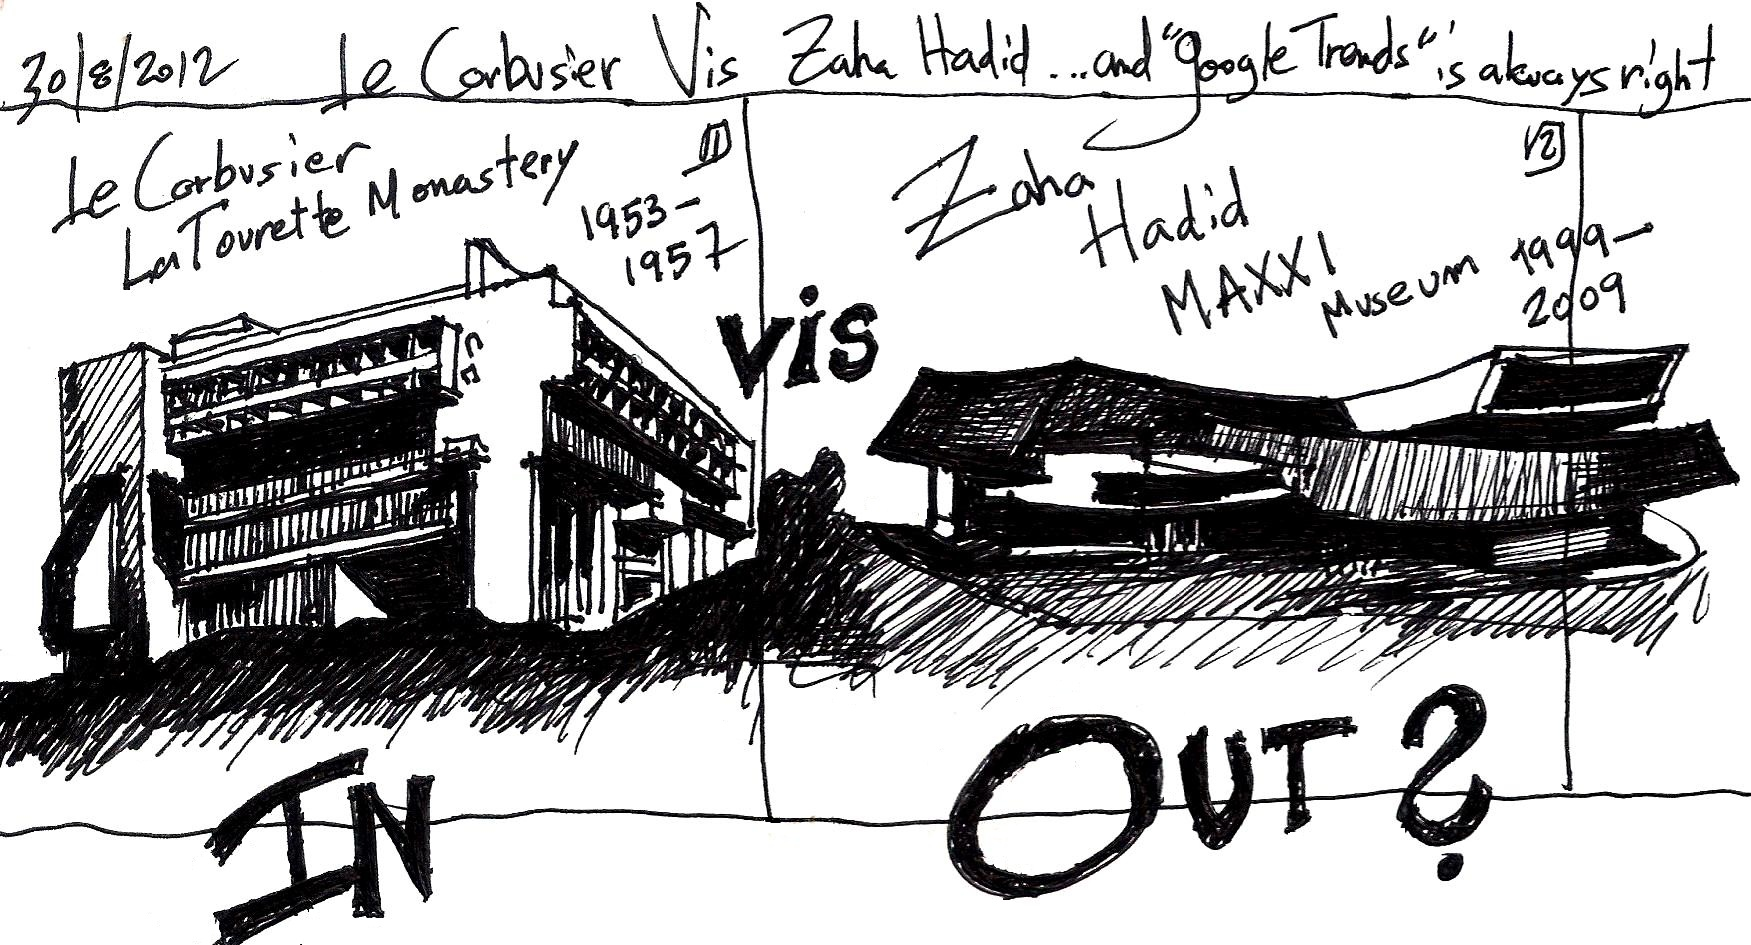 Le corbusier vis zaha hadid and google trends is for 5 points of architecture